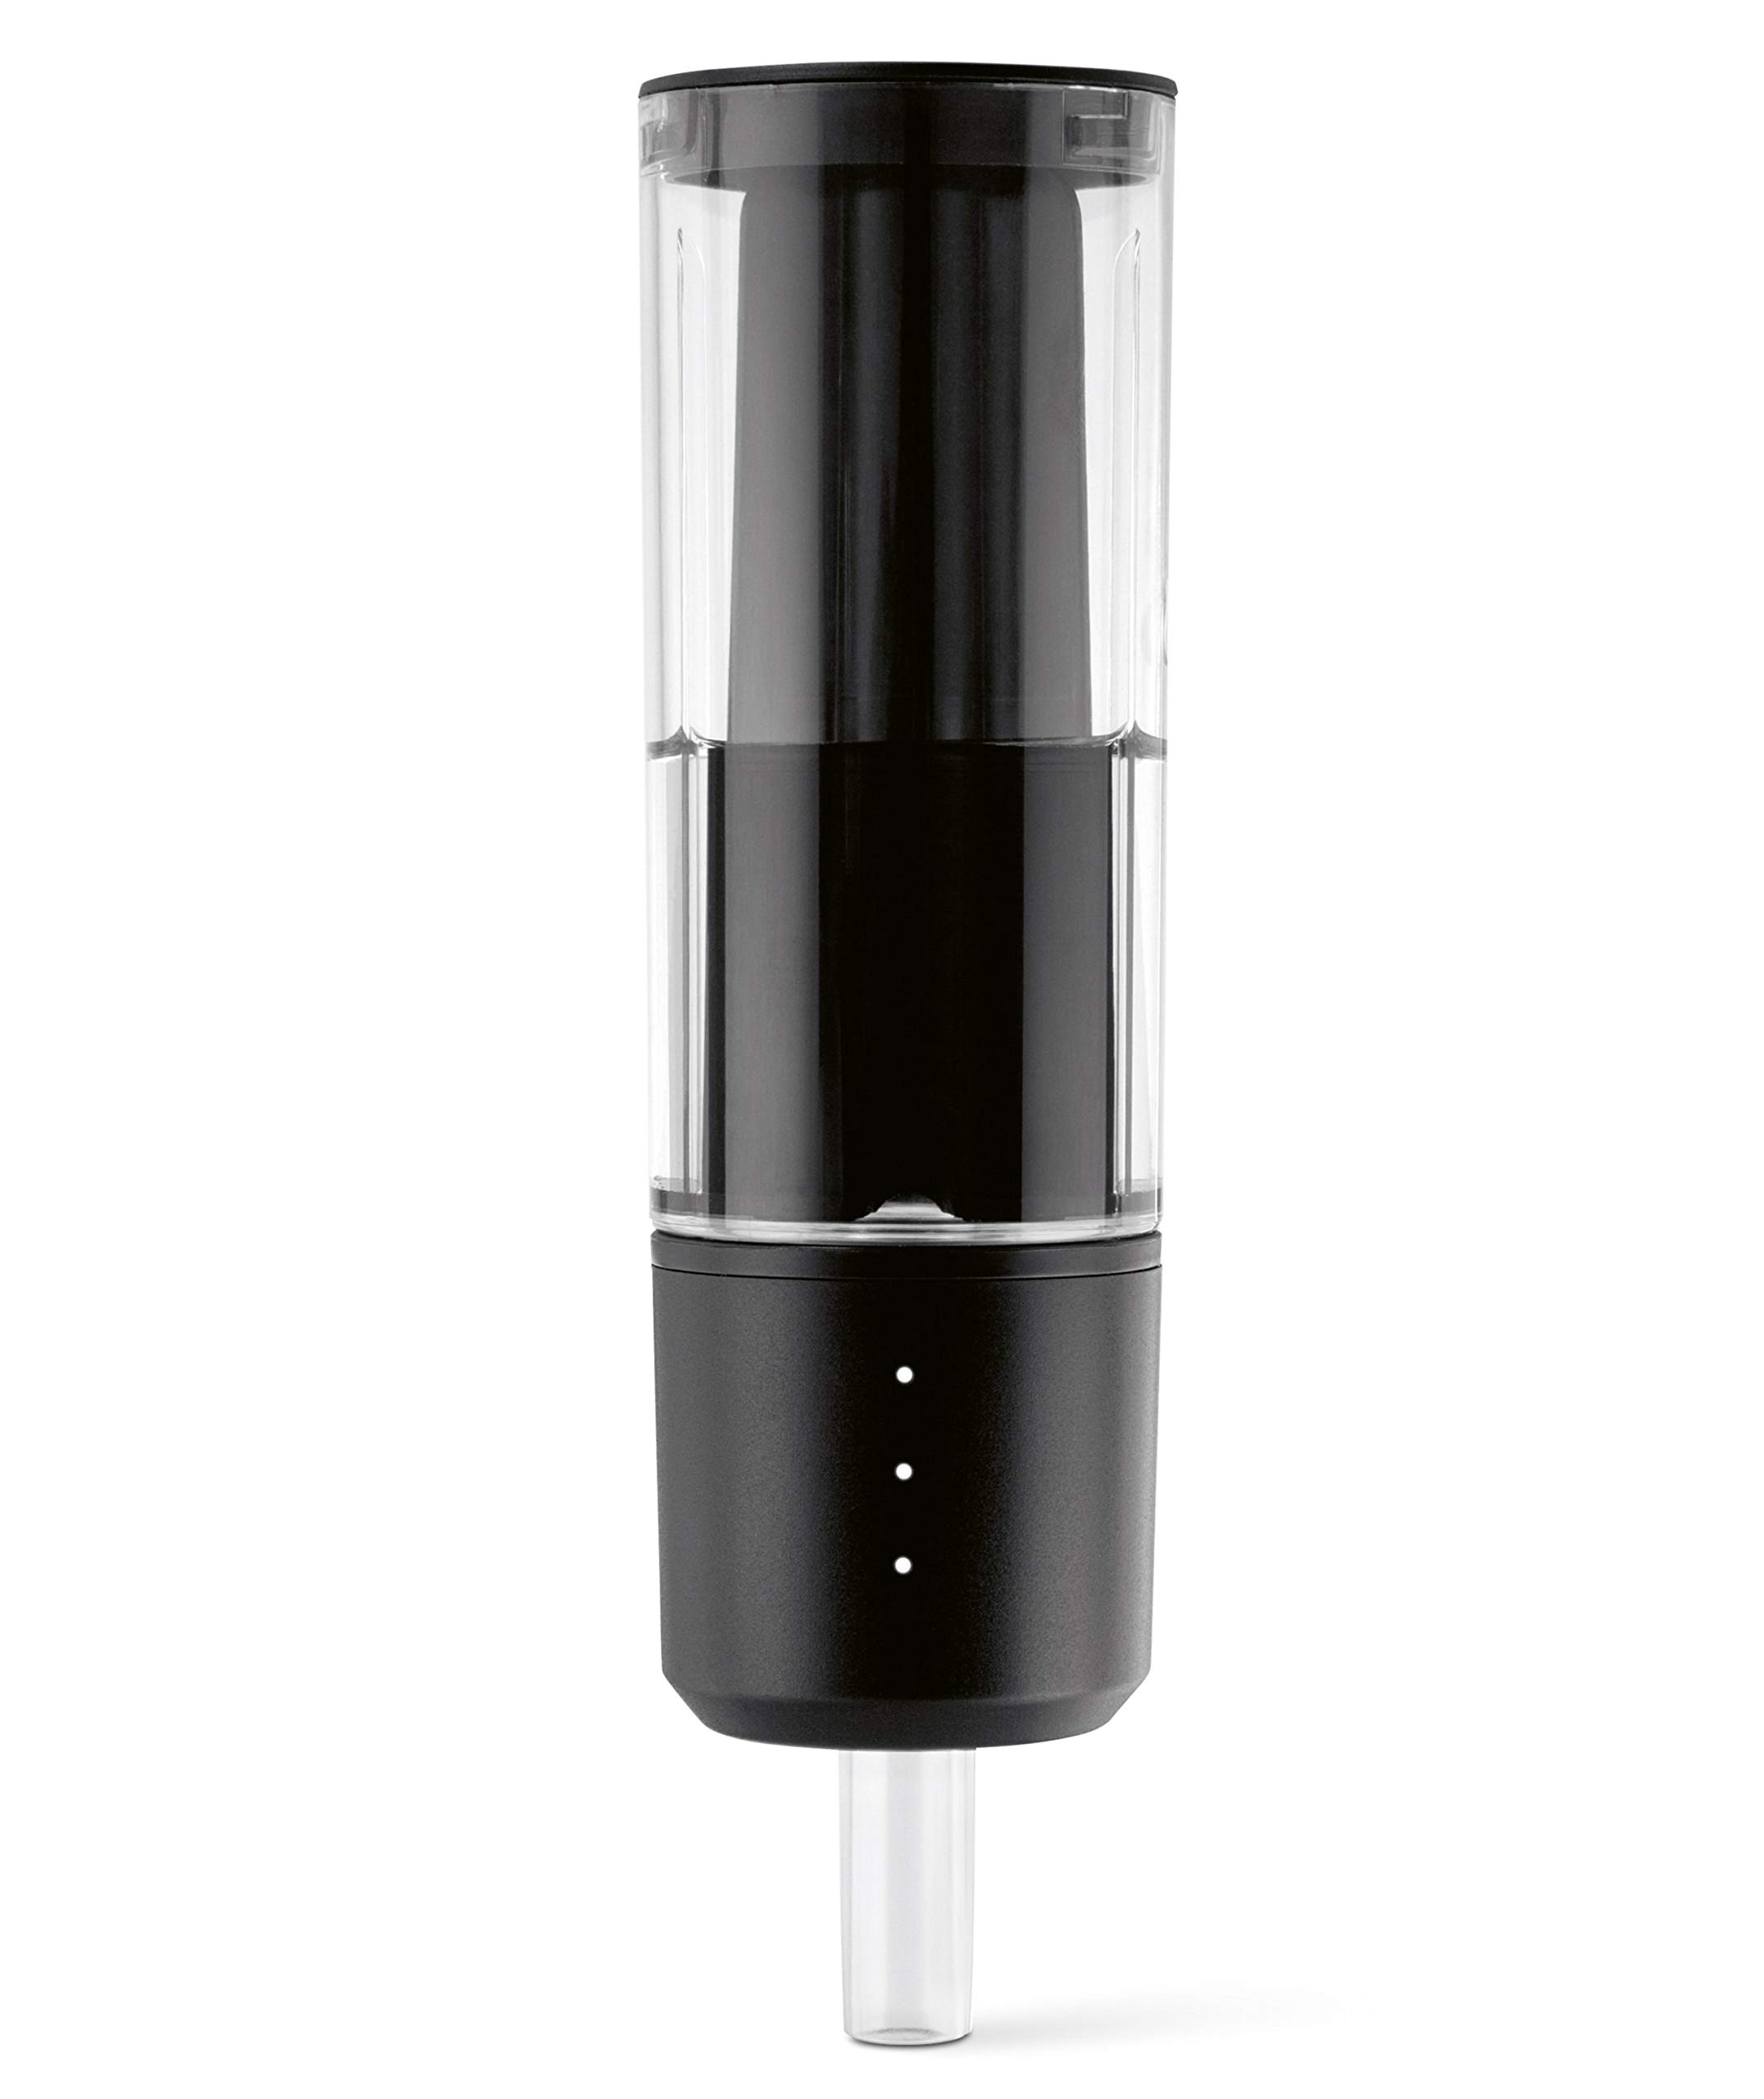 PLAATO Airlock - WiFi Fermentation Analyzer for Homebrewing by PLAATO